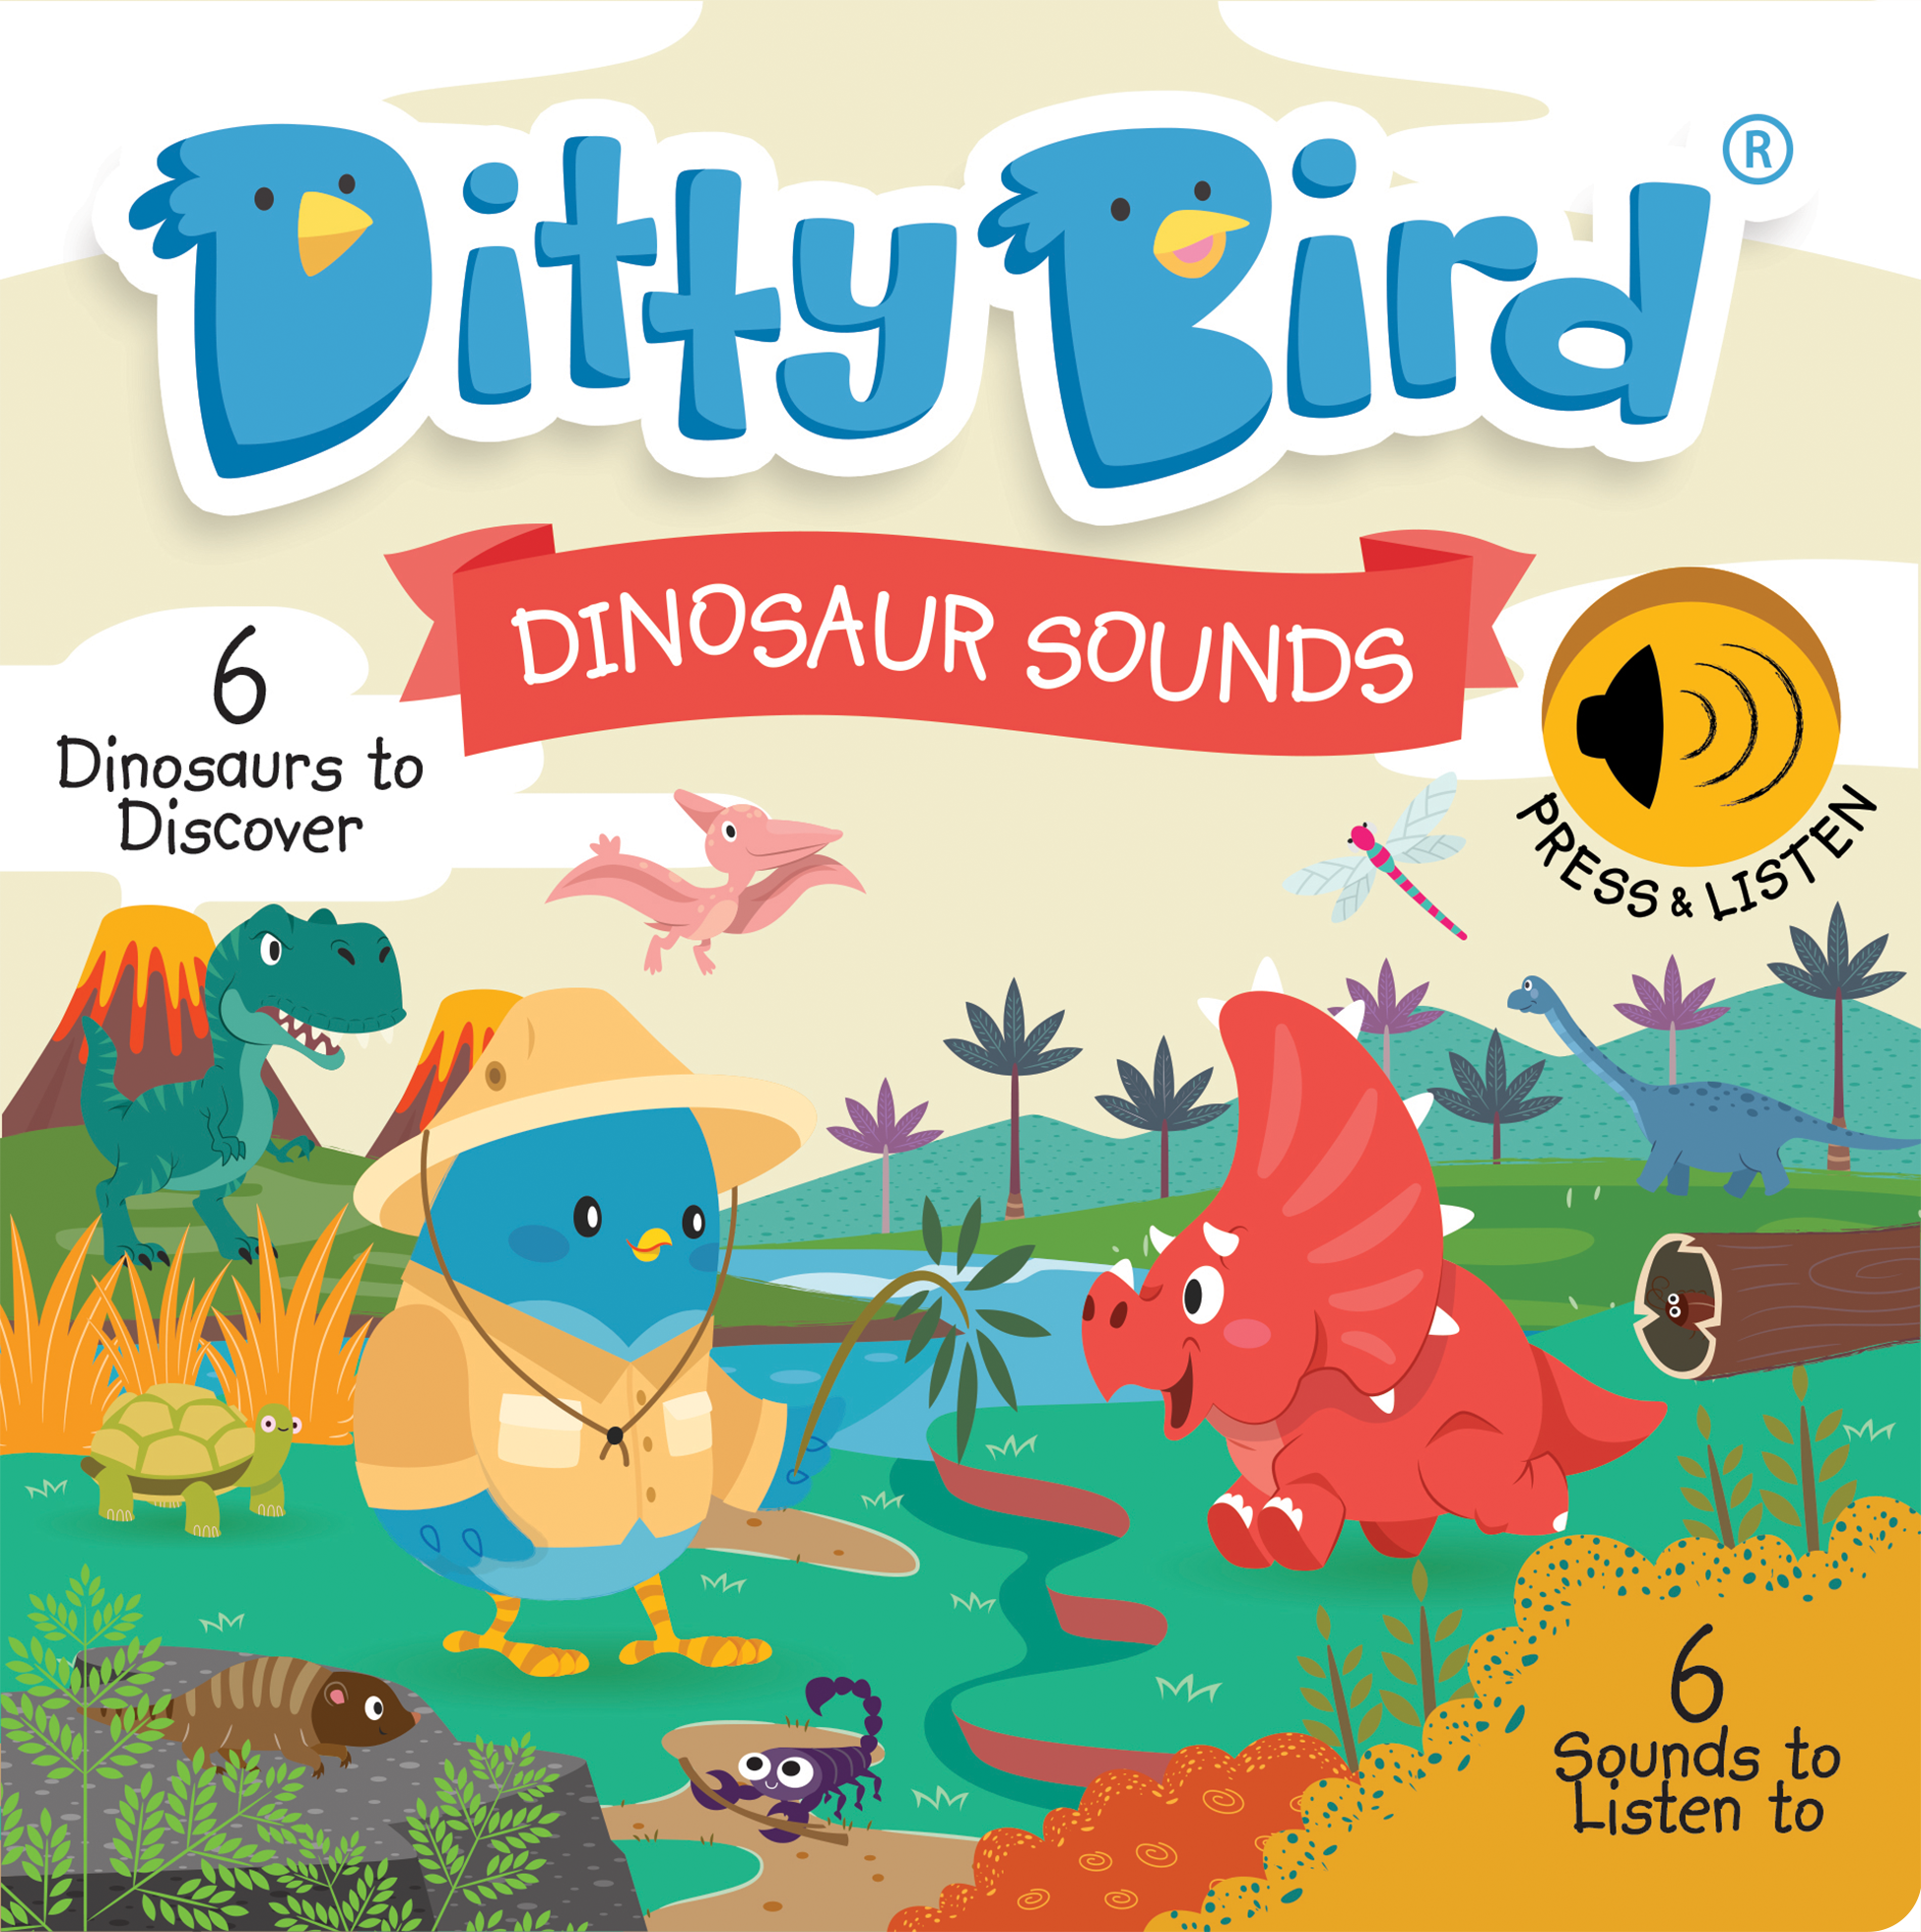 NEW! Ditty Bird - Dinosaur Sounds